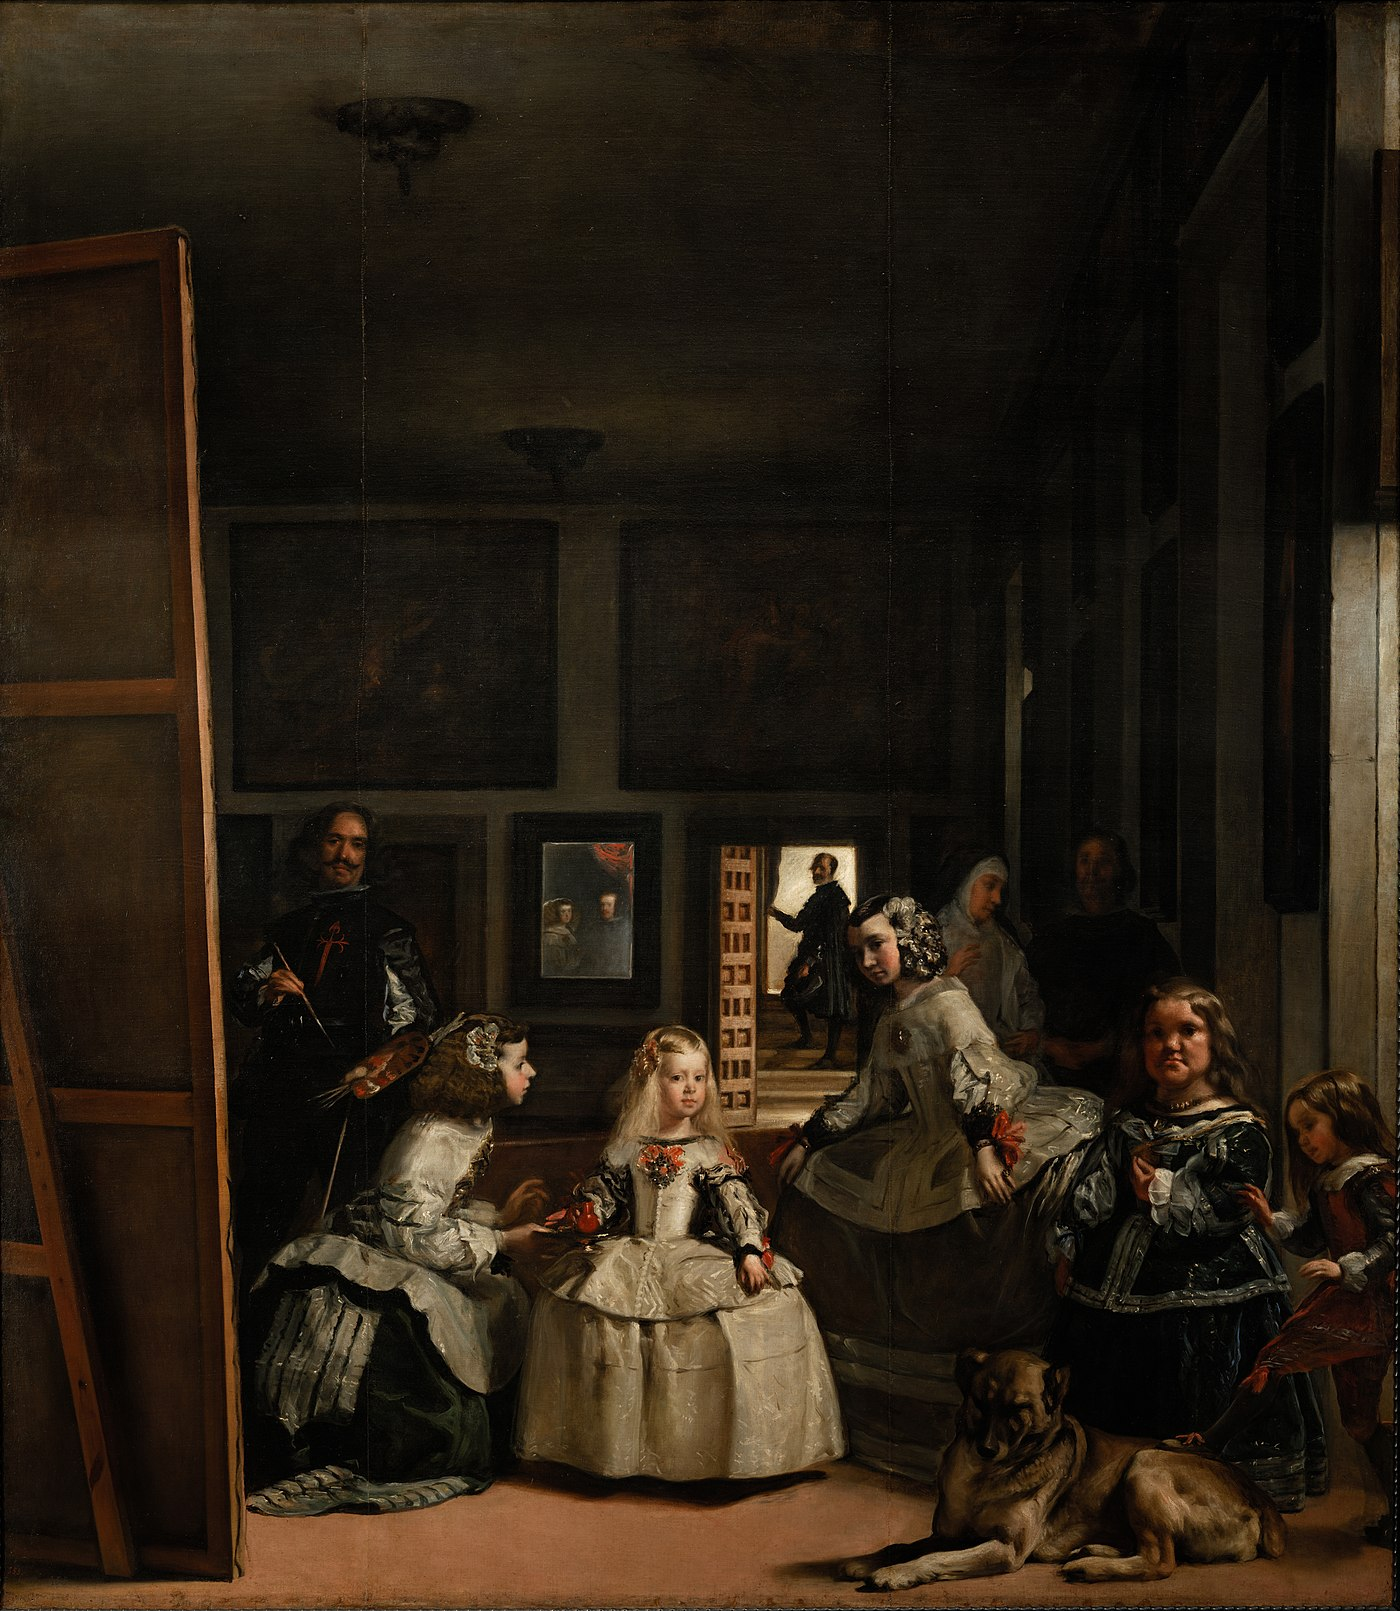 http://upload.wikimedia.org/wikipedia/commons/thumb/3/31/Las_Meninas,_by_Diego_Vel%C3%A1zquez,_from_Prado_in_Google_Earth.jpg/1400px-Las_Meninas,_by_Diego_Vel%C3%A1zquez,_from_Prado_in_Google_Earth.jpg